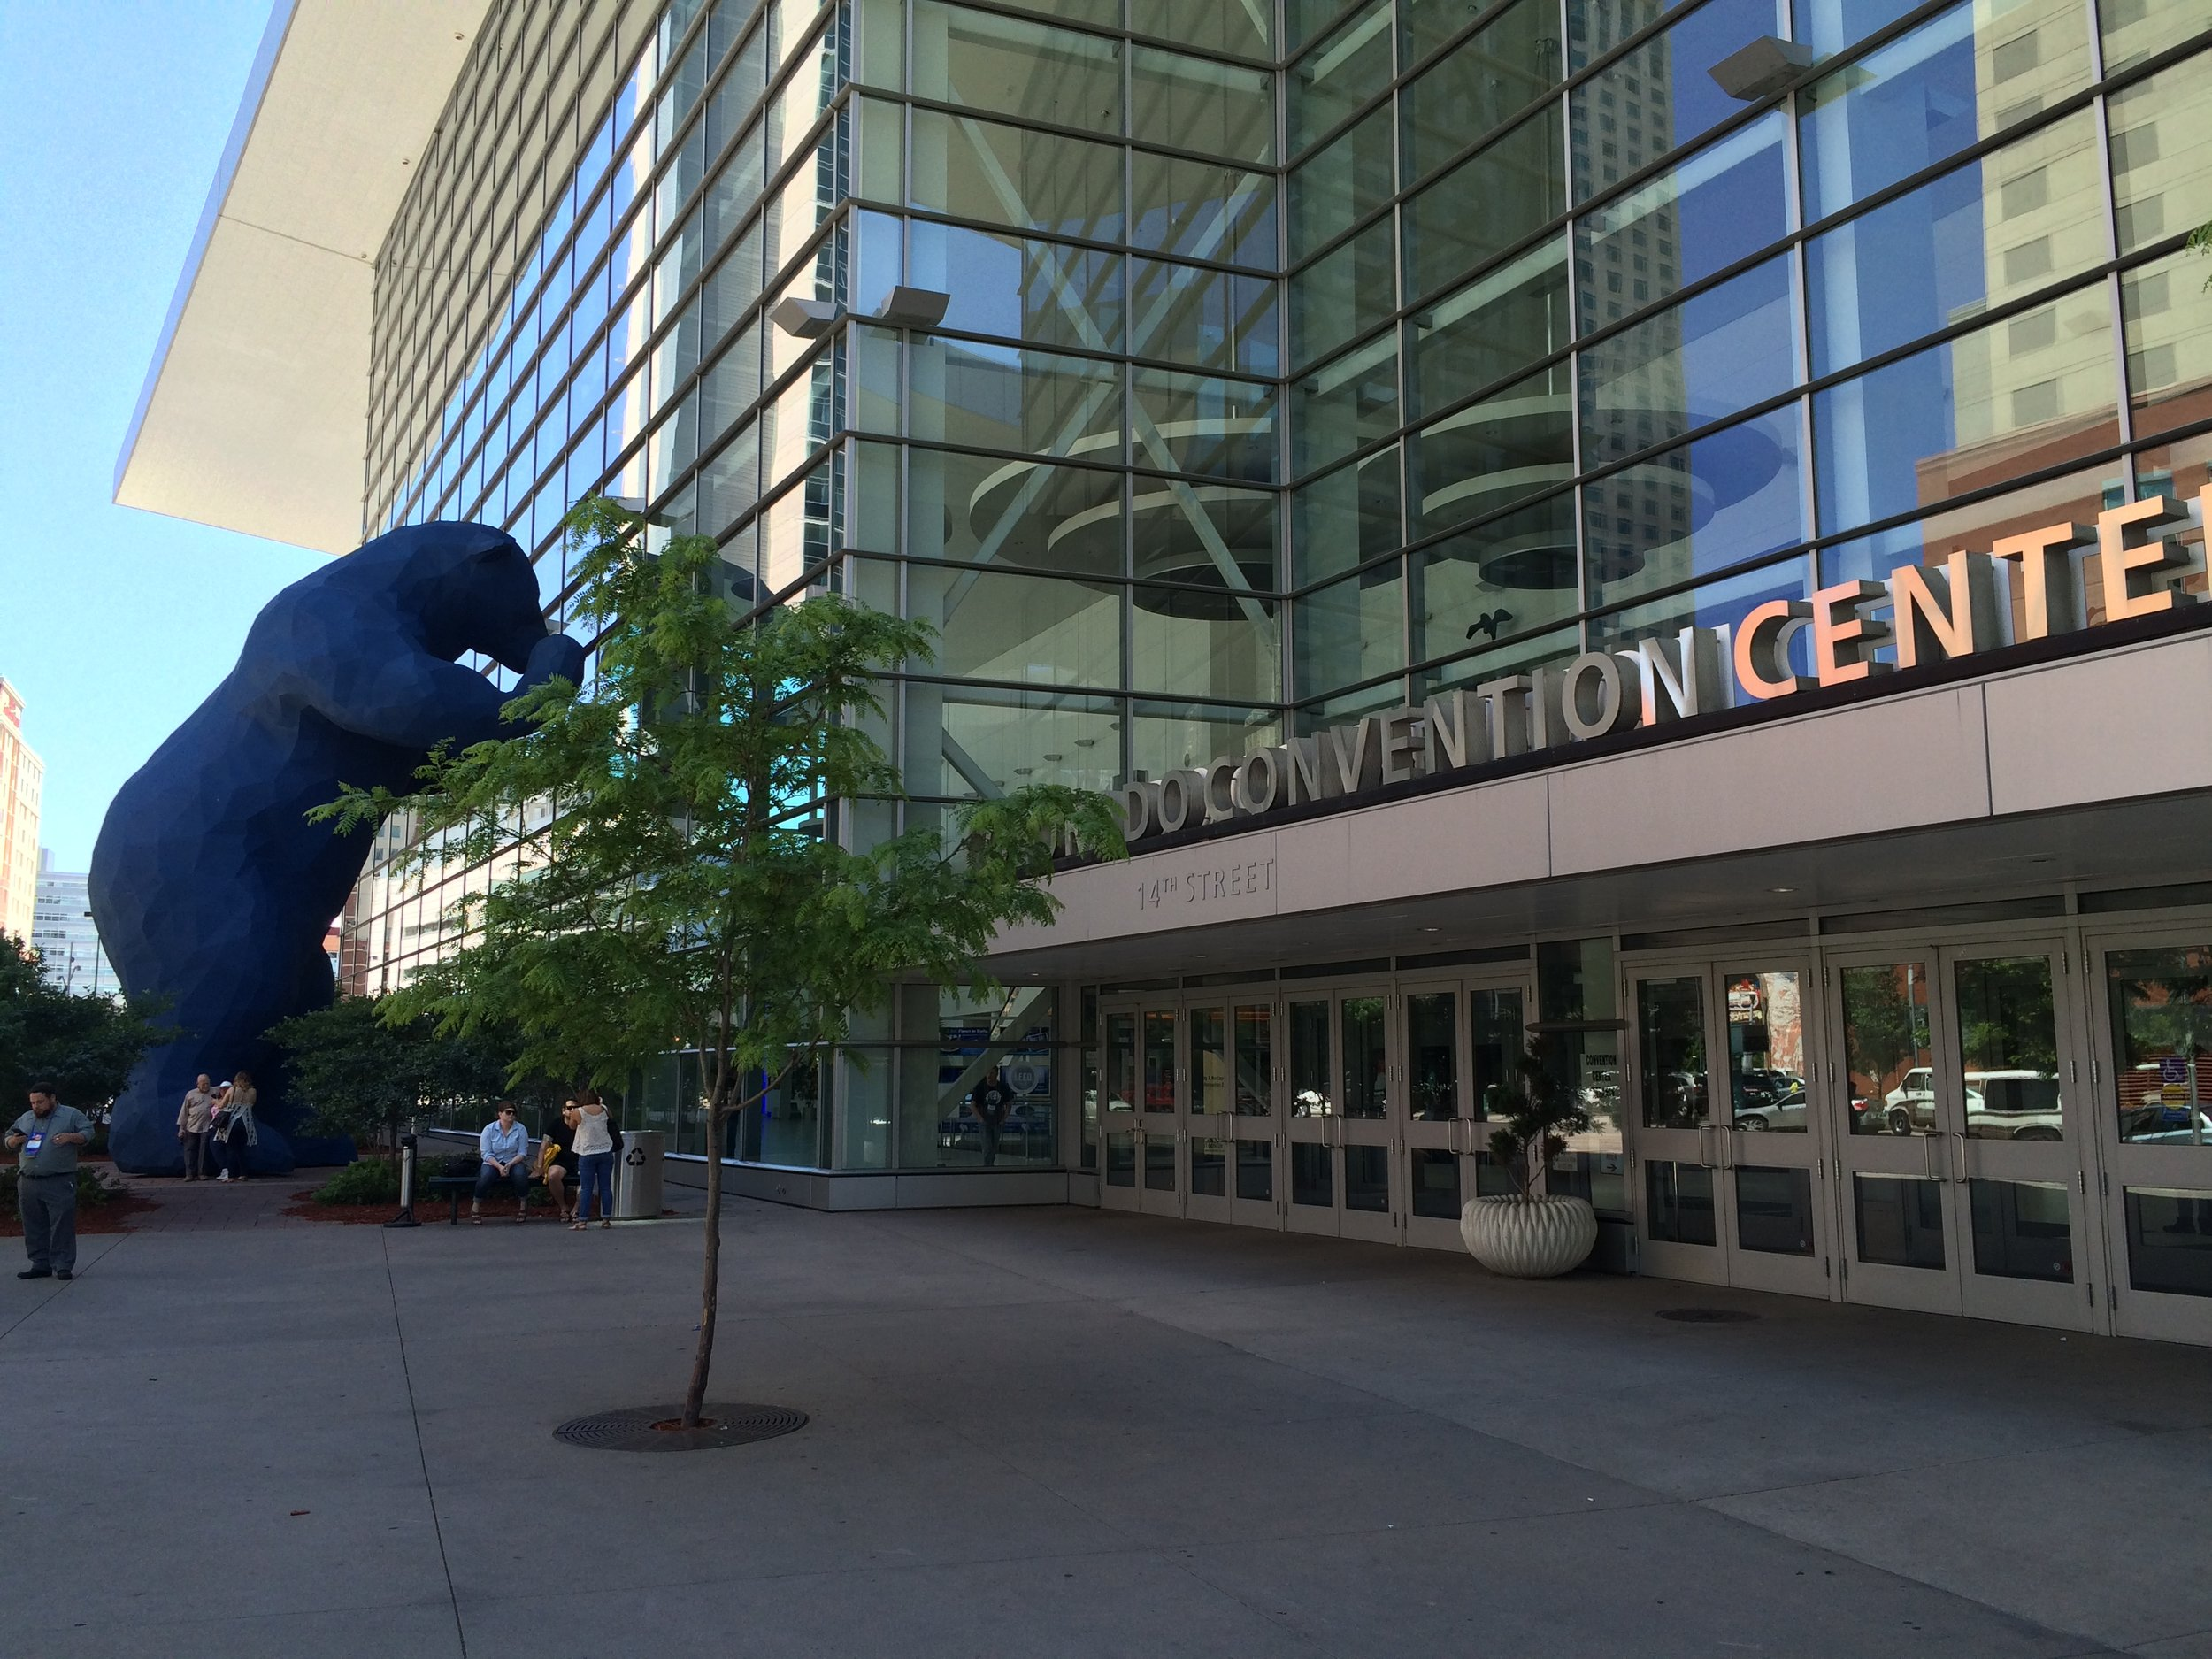 ASTRA awaits inside the Denver Convention Center!